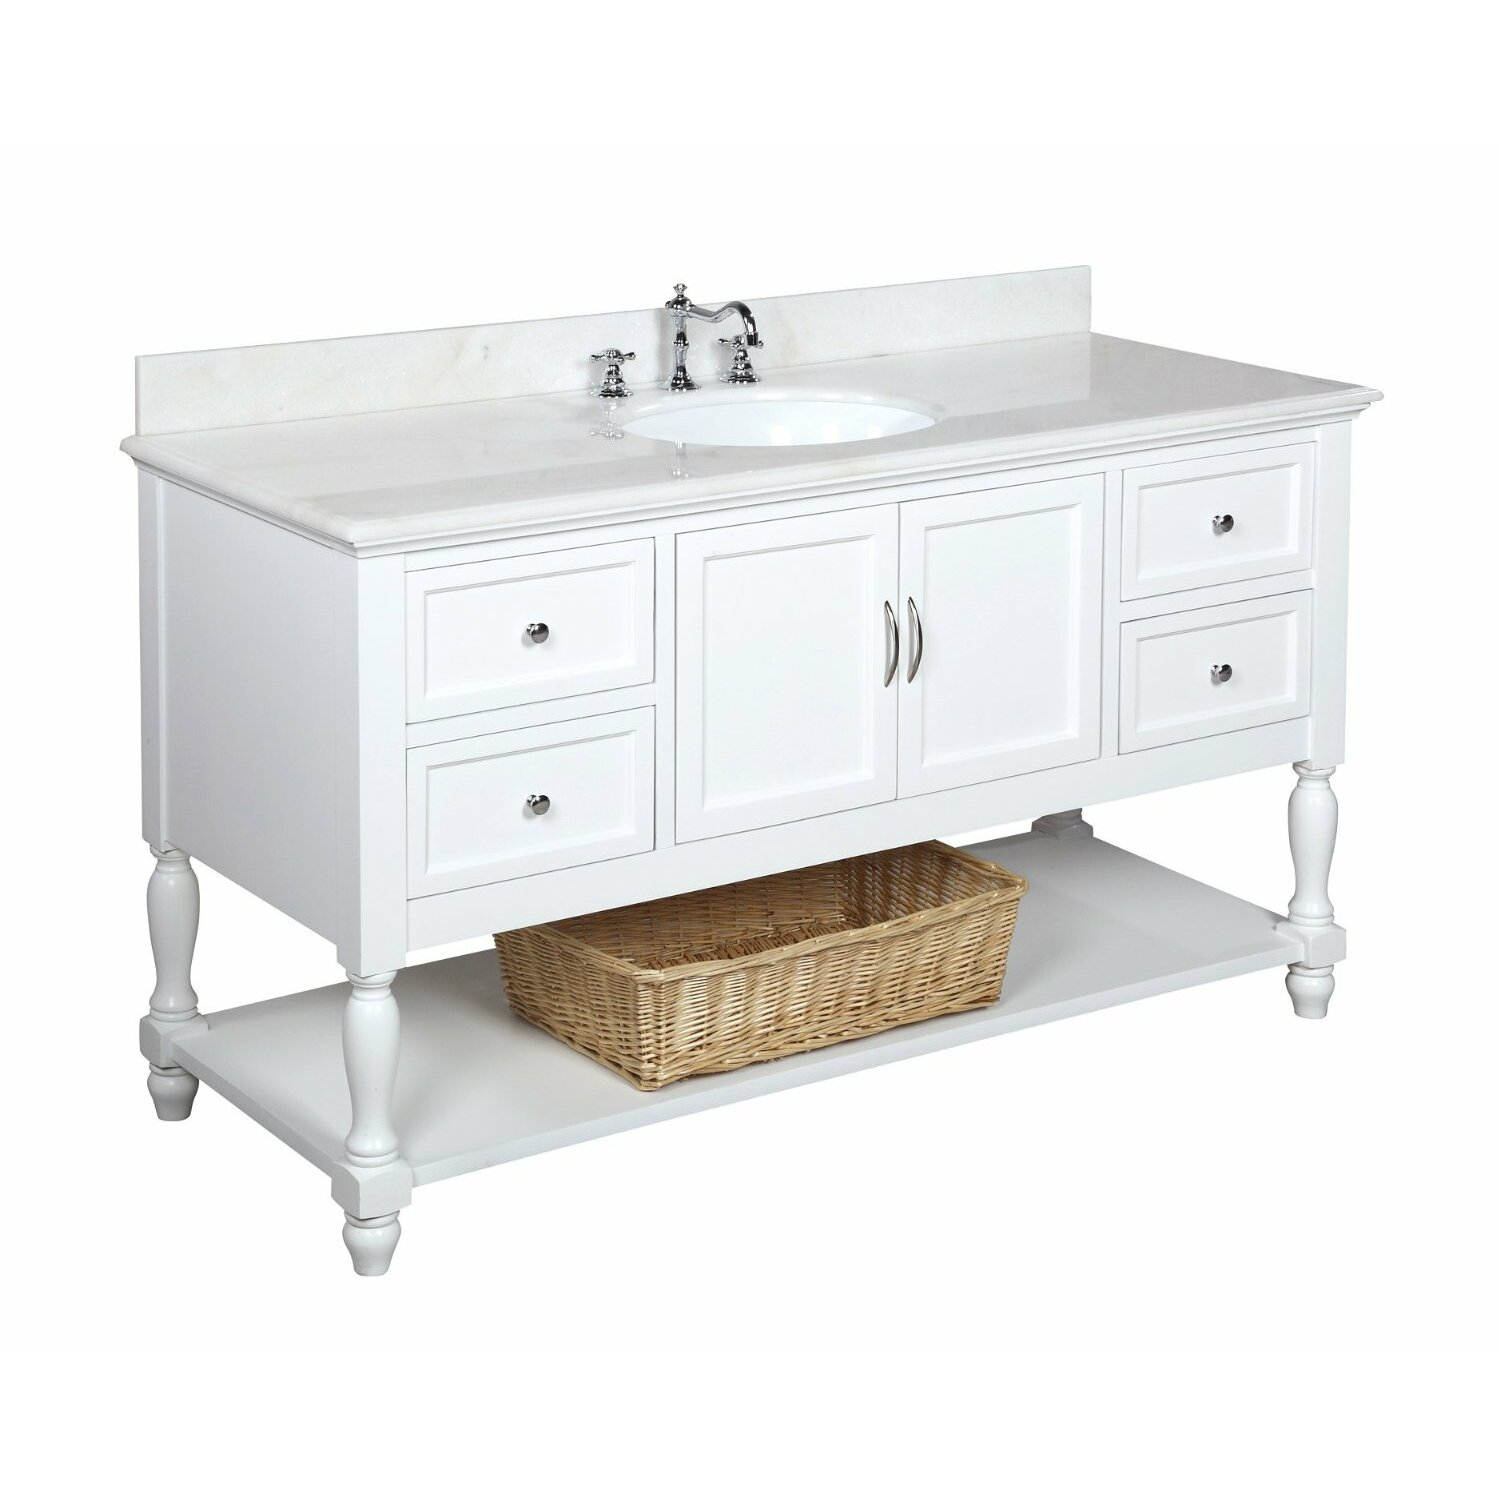 60 bathroom vanity single sink kbc beverly 60 quot single bathroom vanity set amp reviews wayfair 21862